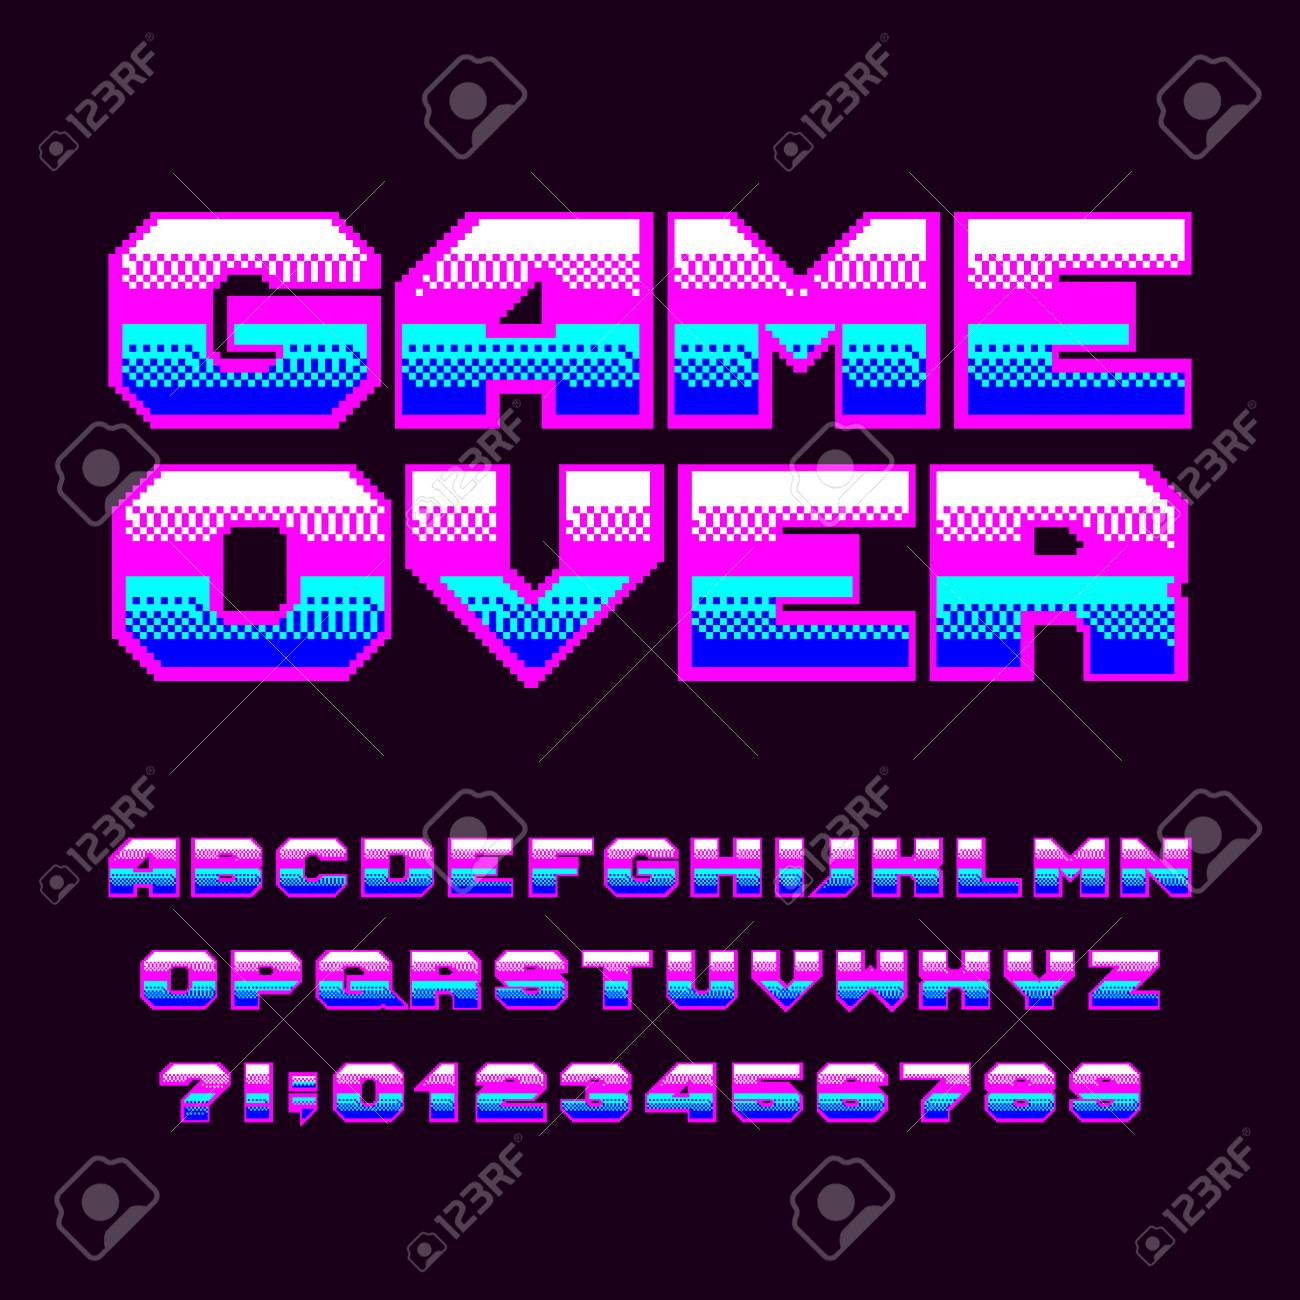 Game Over Alphabet Font Pixel Letters And Numbers 80s Arcade Video Typeset